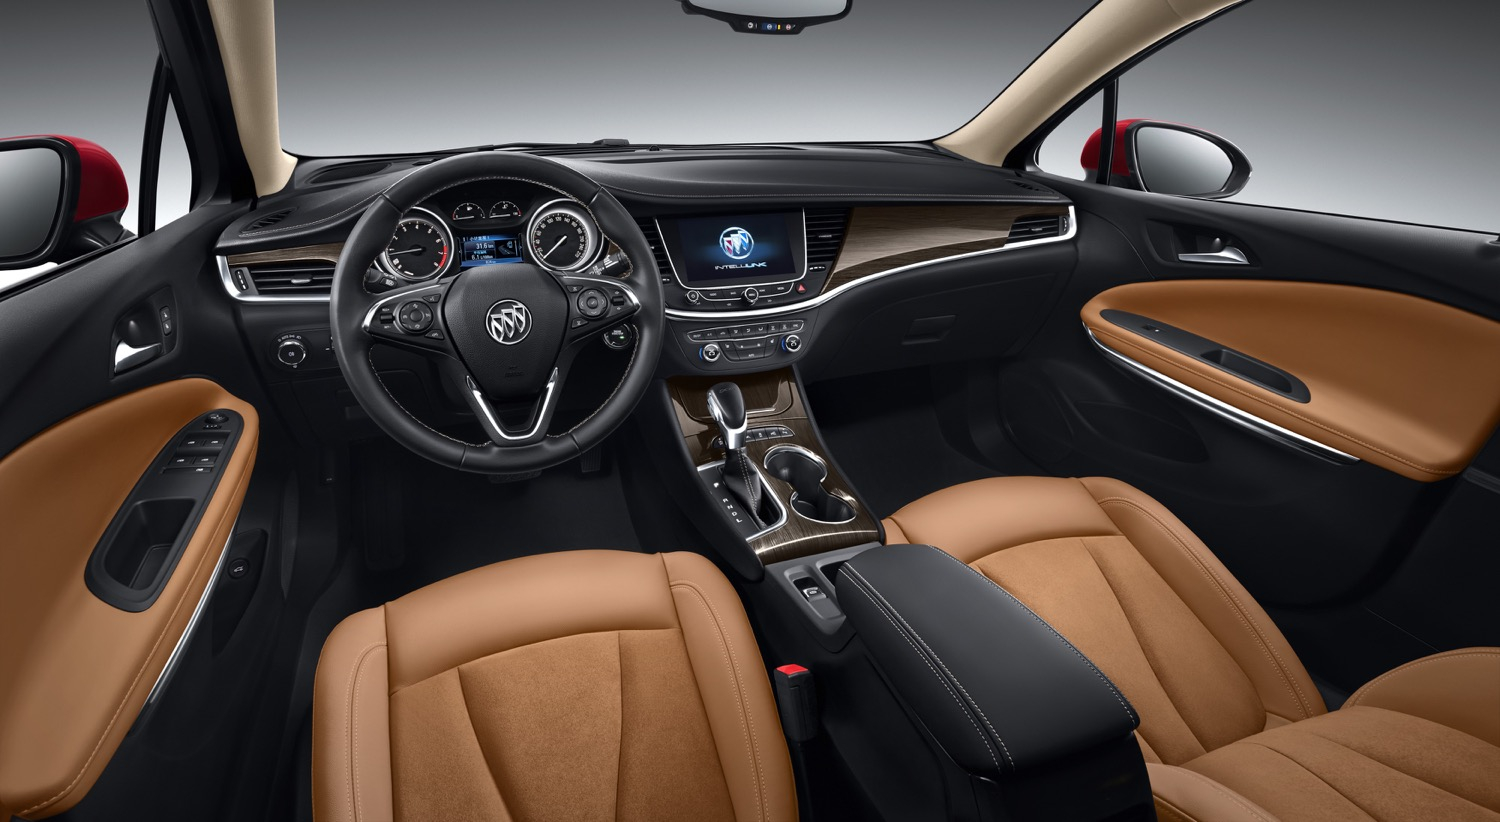 2016 Buick Verano D2Xx Info, Specs, Pictures | Gm Authority New 2022 Buick Verano Length, Images, Manual Transmission